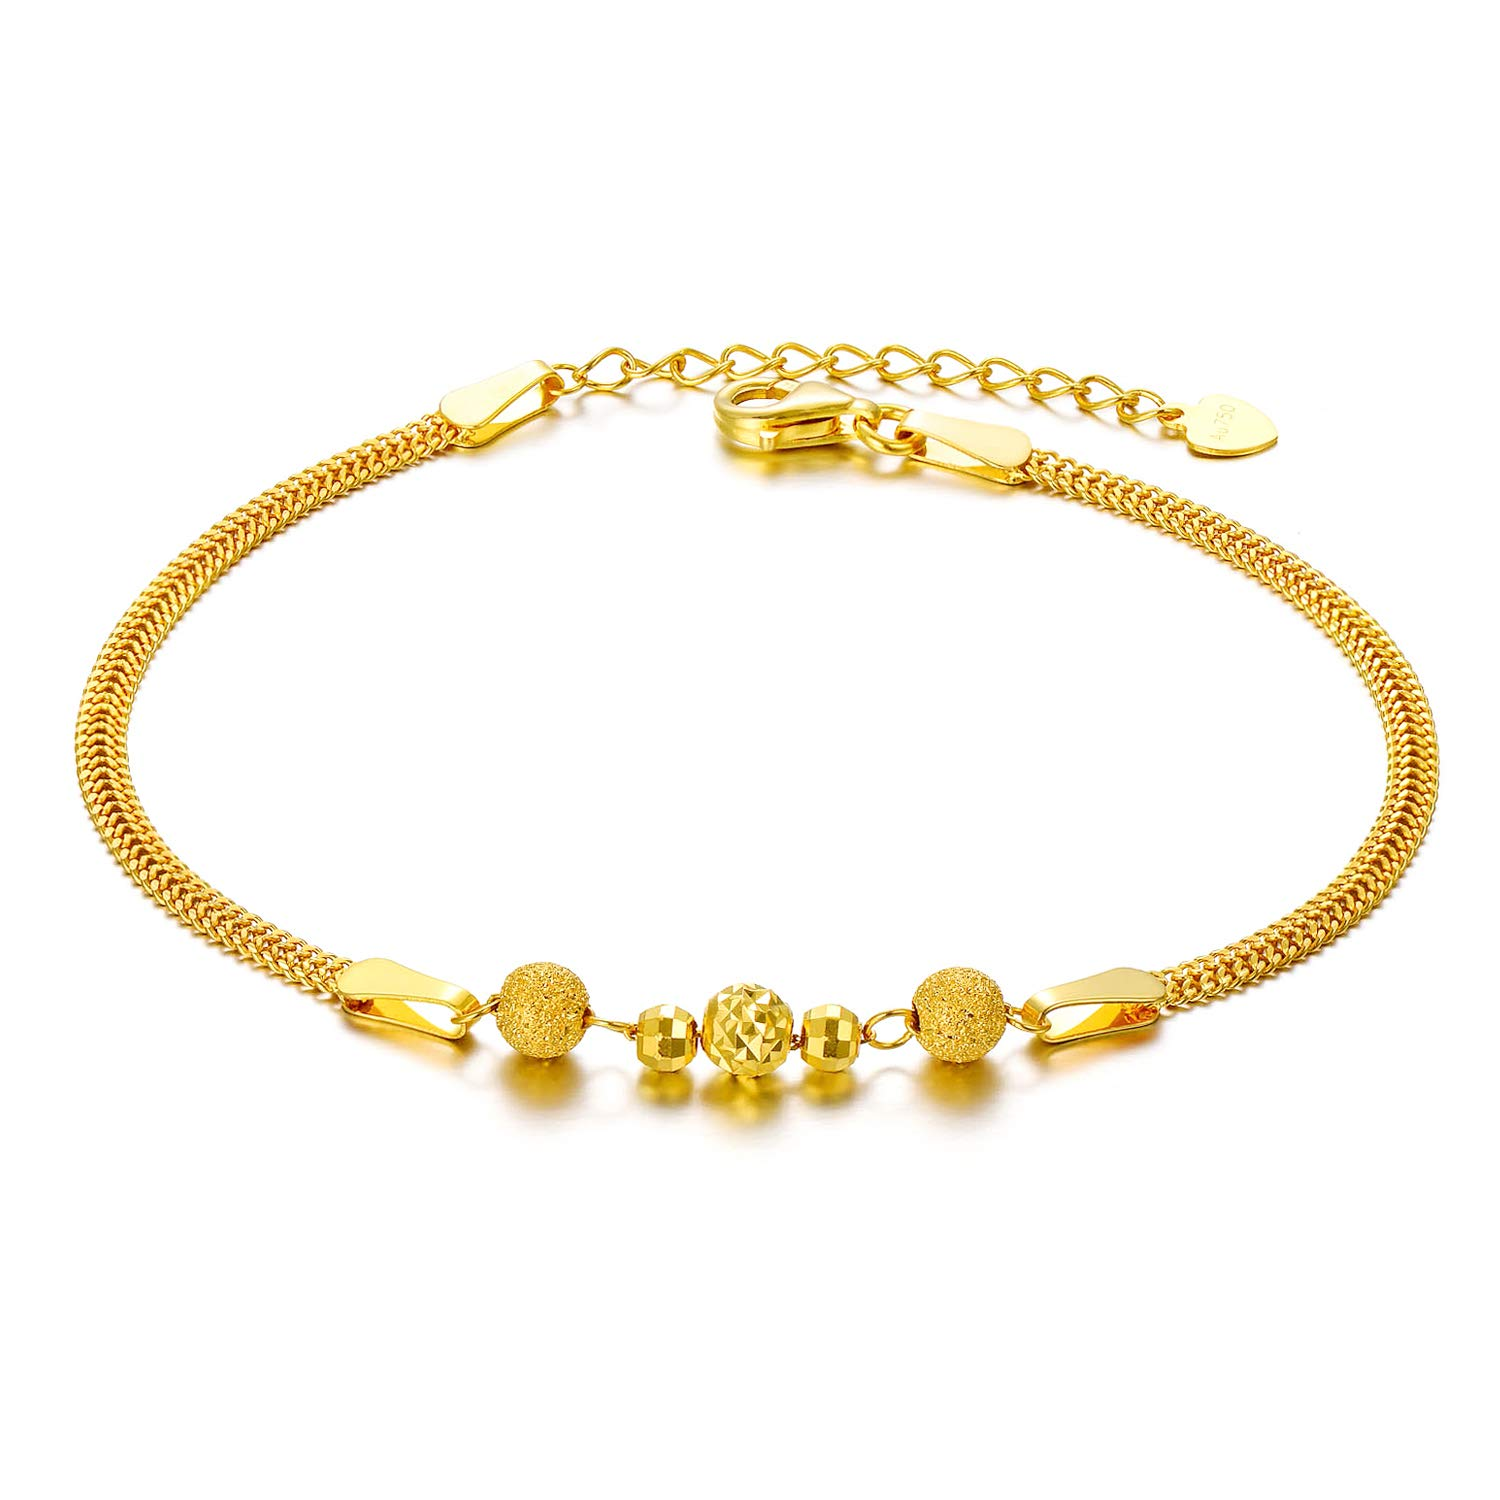 SISGEM Solid 18k Yellow Gold Bracelets for Women, Real Gold Chain Bracelet Adjustable (2.3 mm, 6.5''-7.7'') (Yellow-Gold) by SISGEM